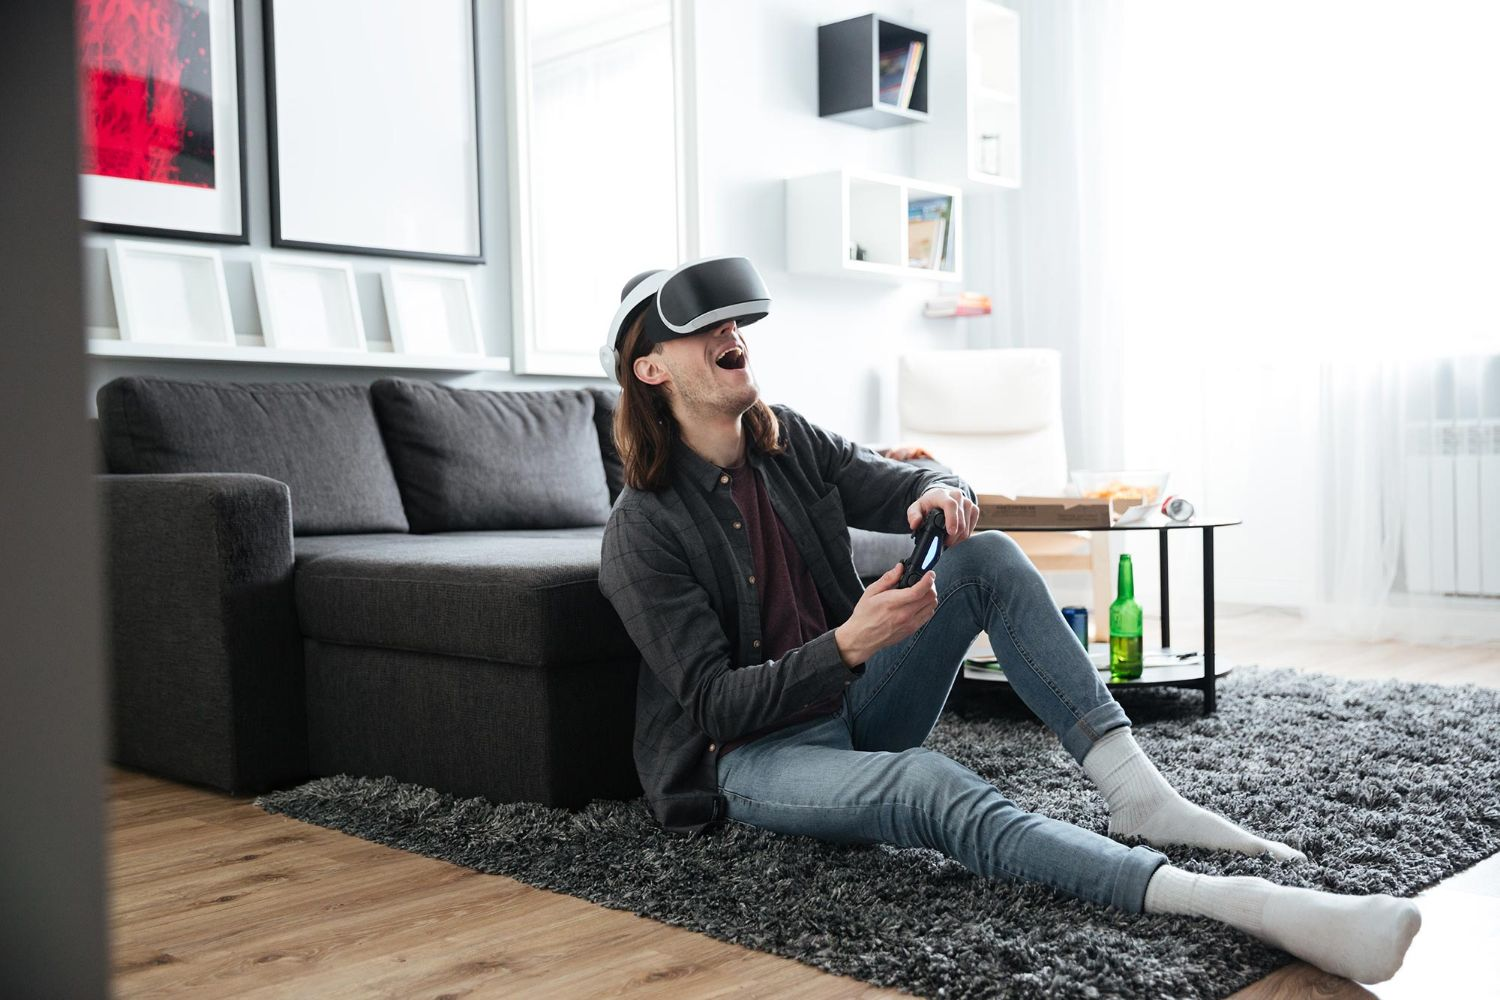 20 Augmented Reality Where physical and virtual experiences meet